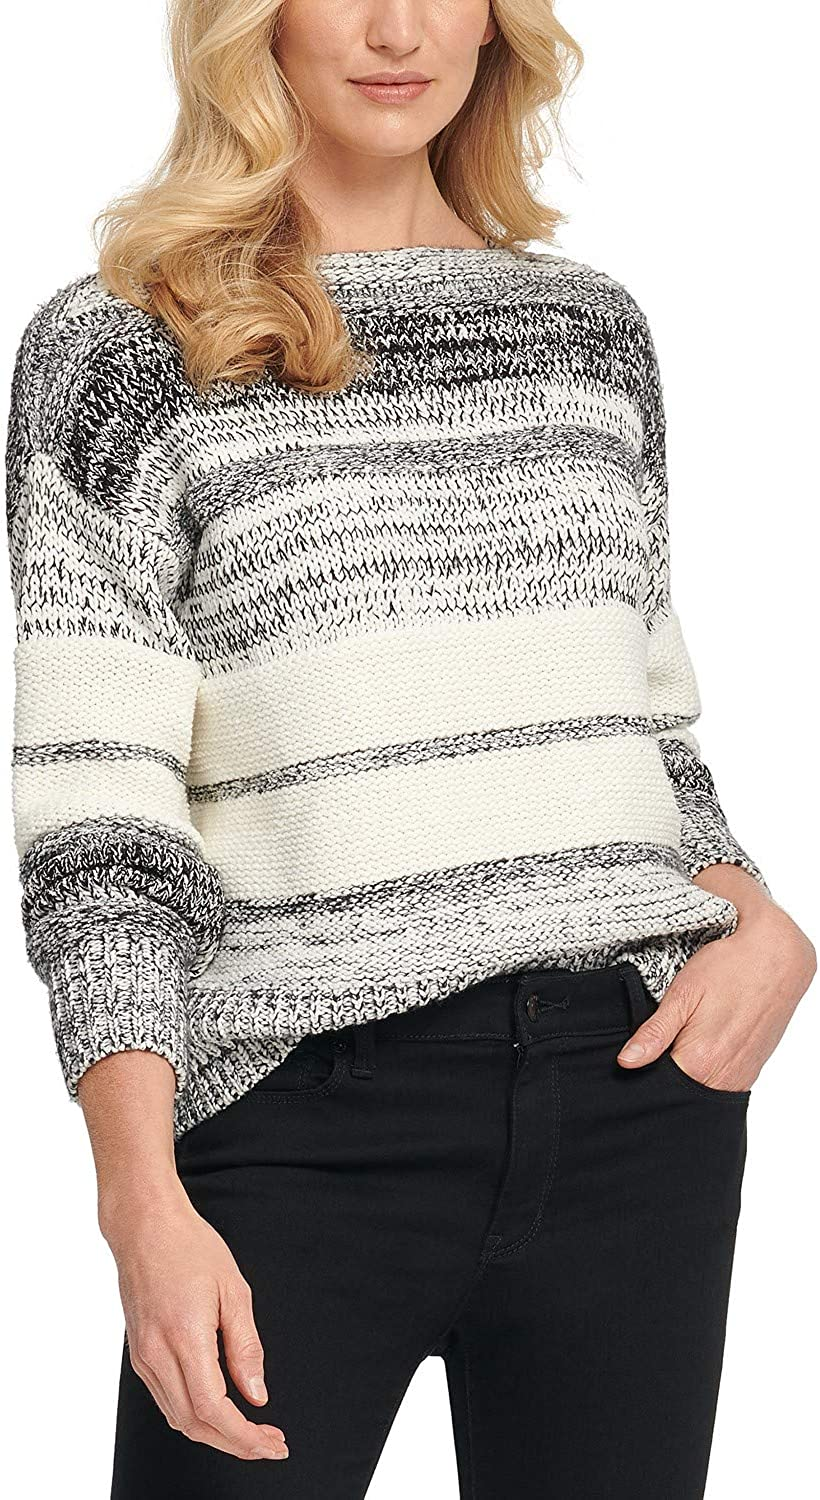 Max 59% OFF Branded goods D K N Y Mixed-Stitch Black Sweater Ivory M